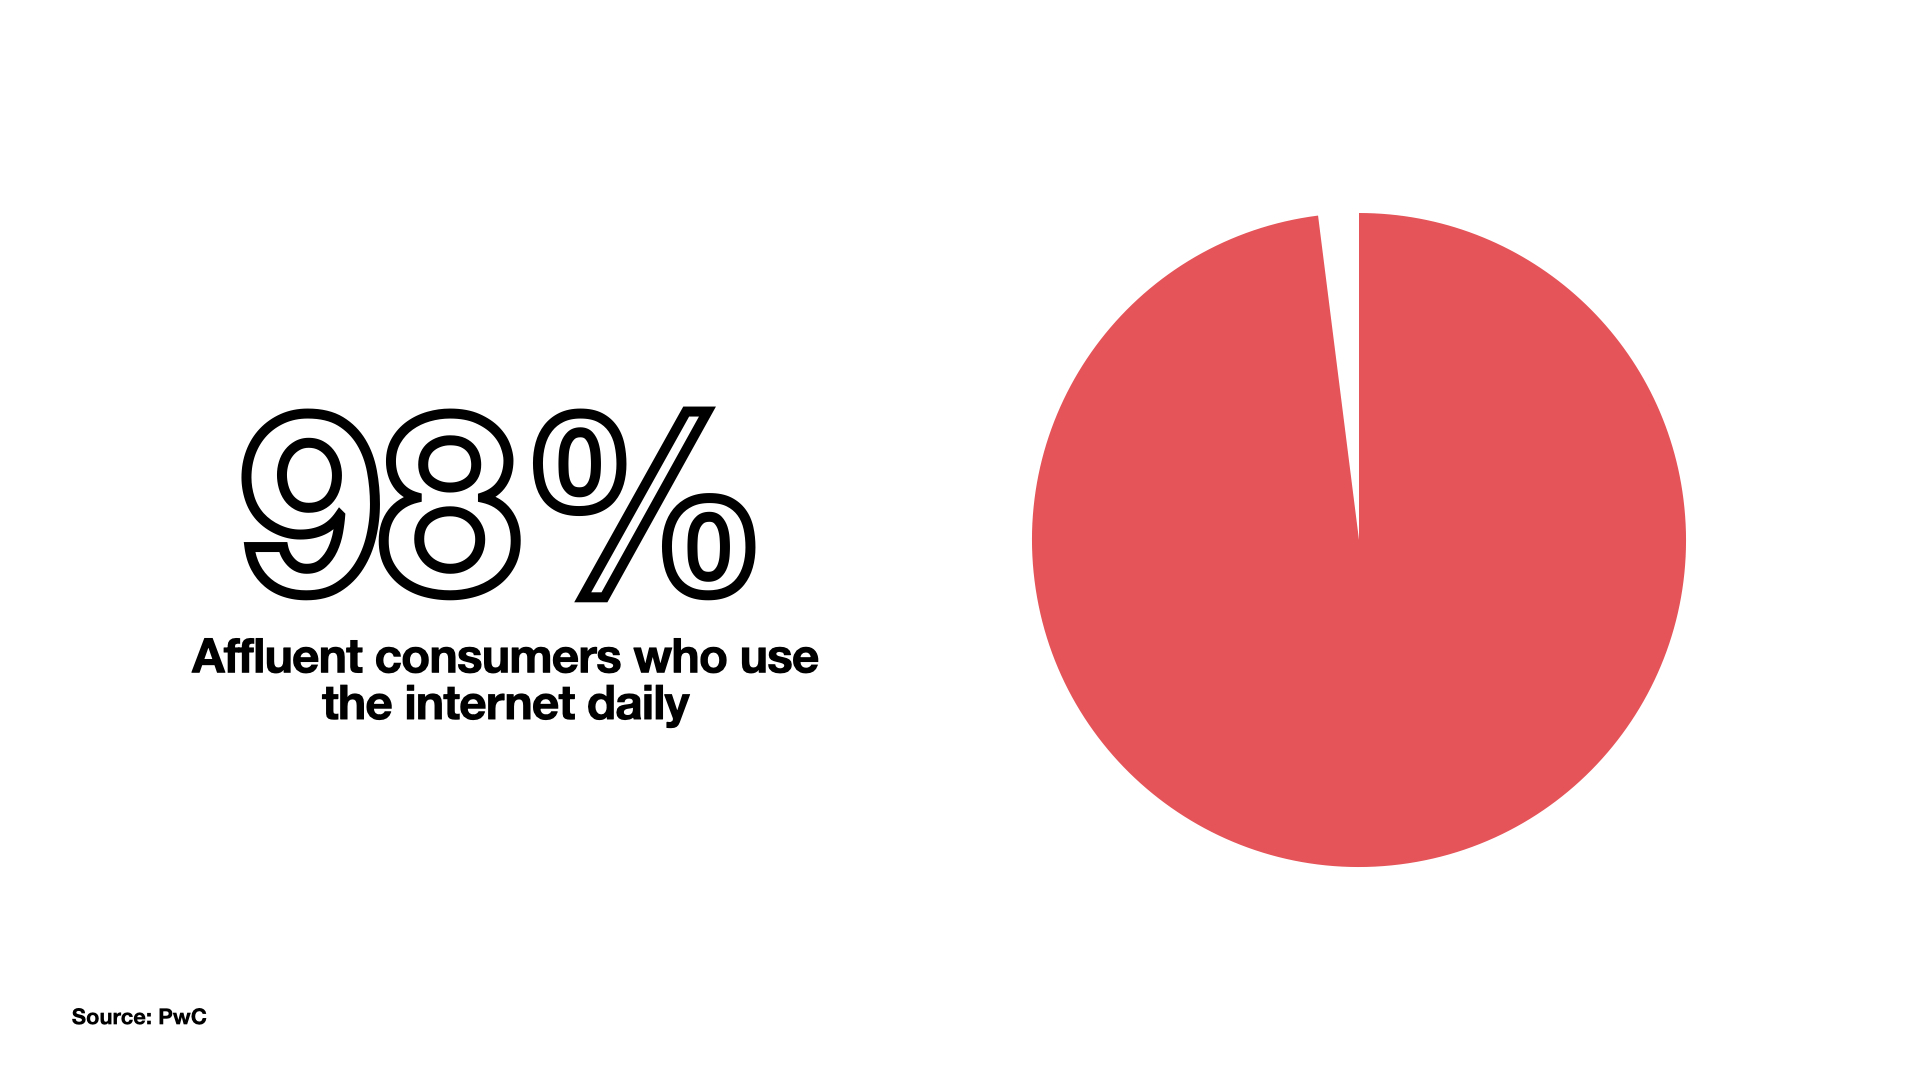 G & Co. is a luxury digital agency: 98% of affluent consumers use the internet daily